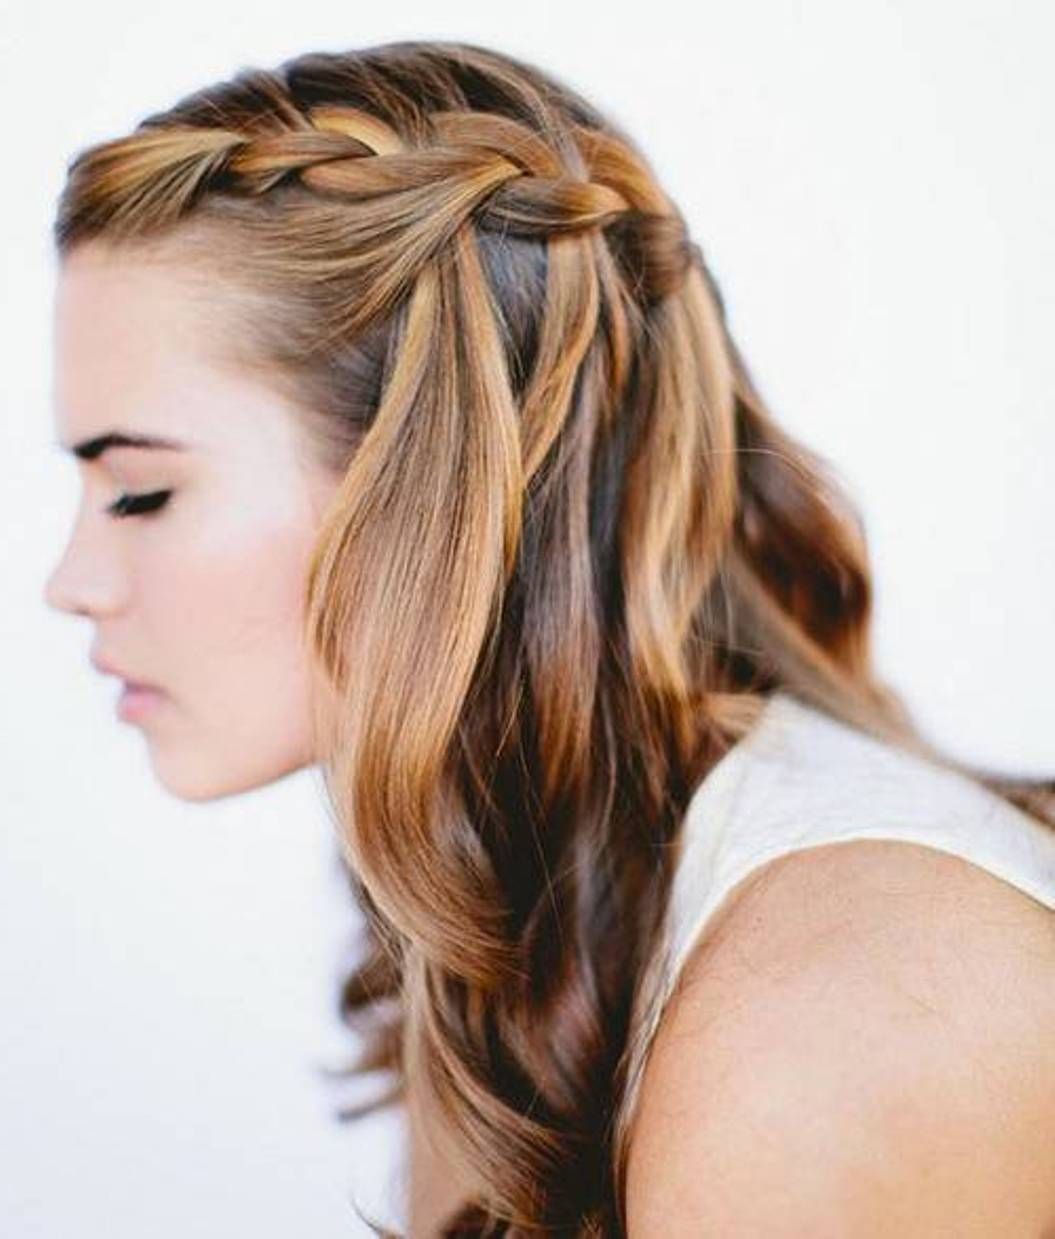 Top long blonde hairstyles braided homecoming hairstyles